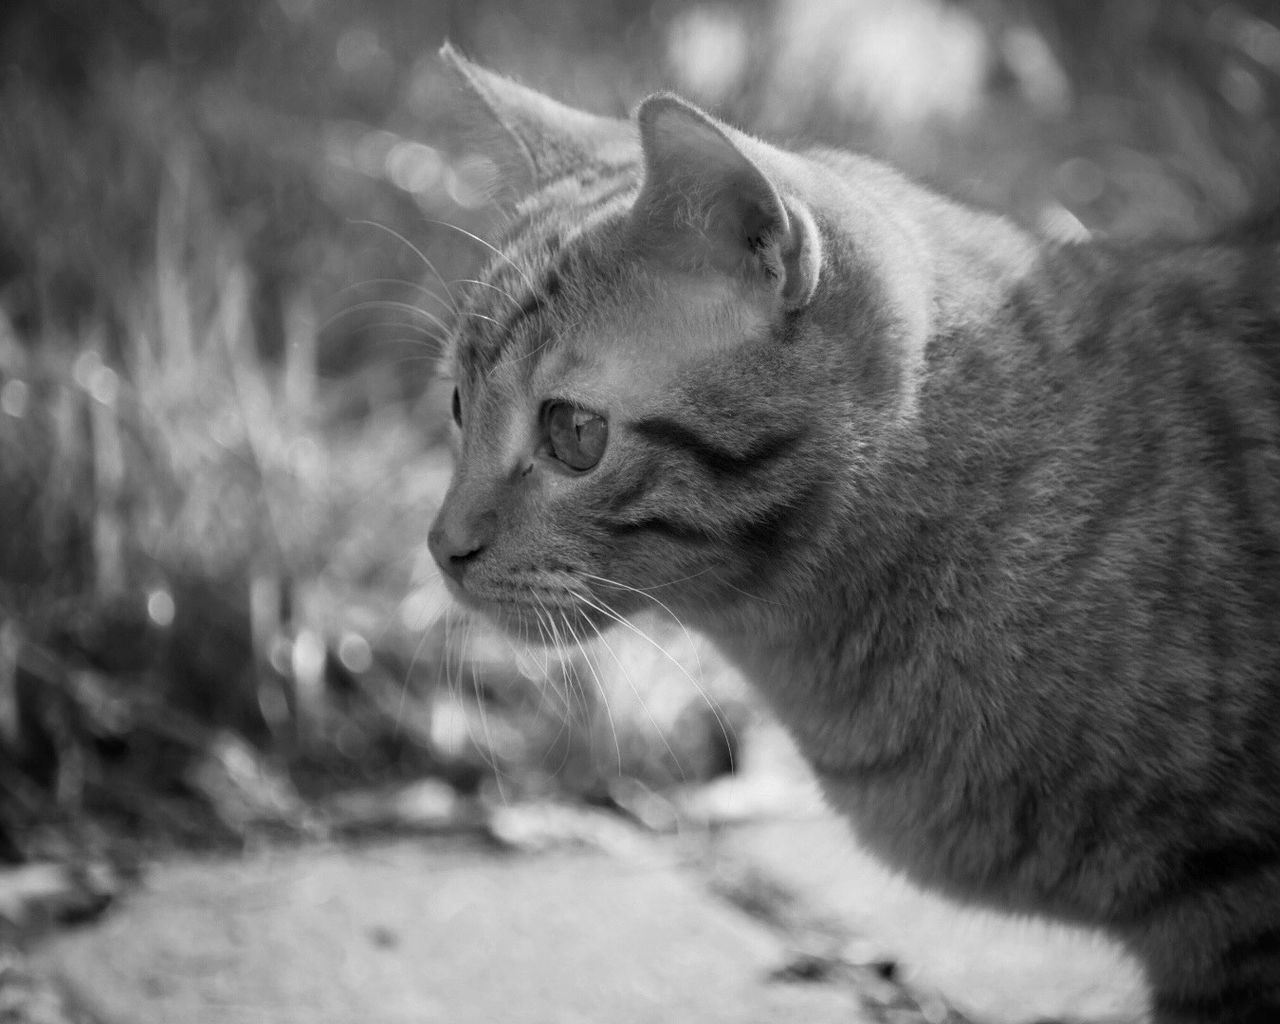 domestic cat, one animal, animal themes, mammal, pets, feline, focus on foreground, domestic animals, whisker, close-up, no people, day, outdoors, nature